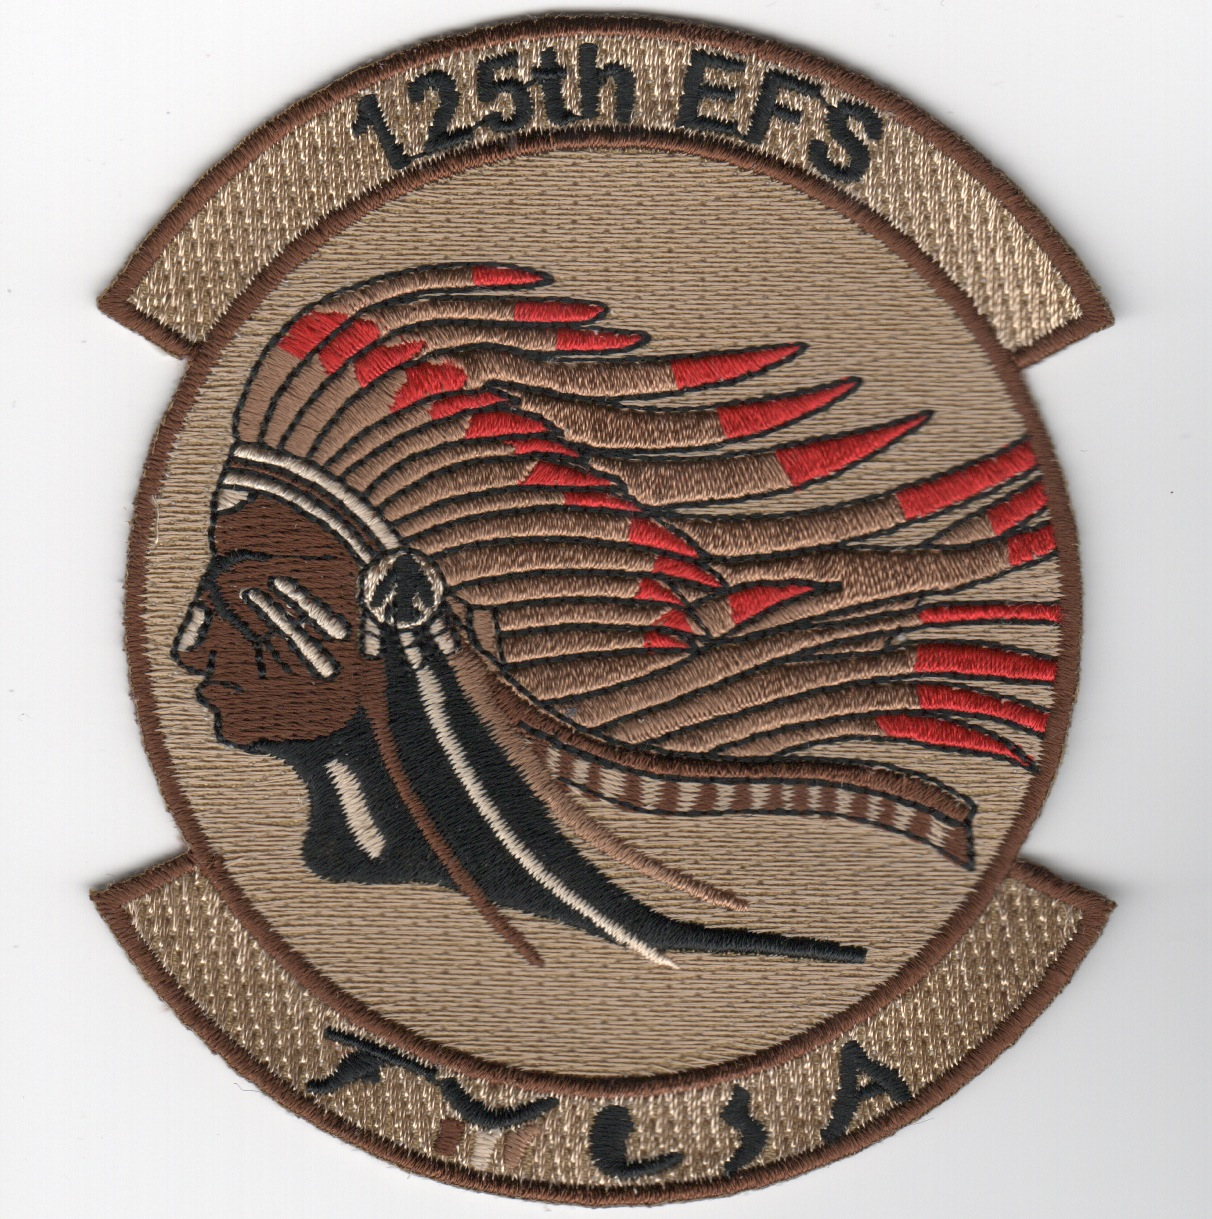 125 Expeditionary Fighter Squadron (Des)